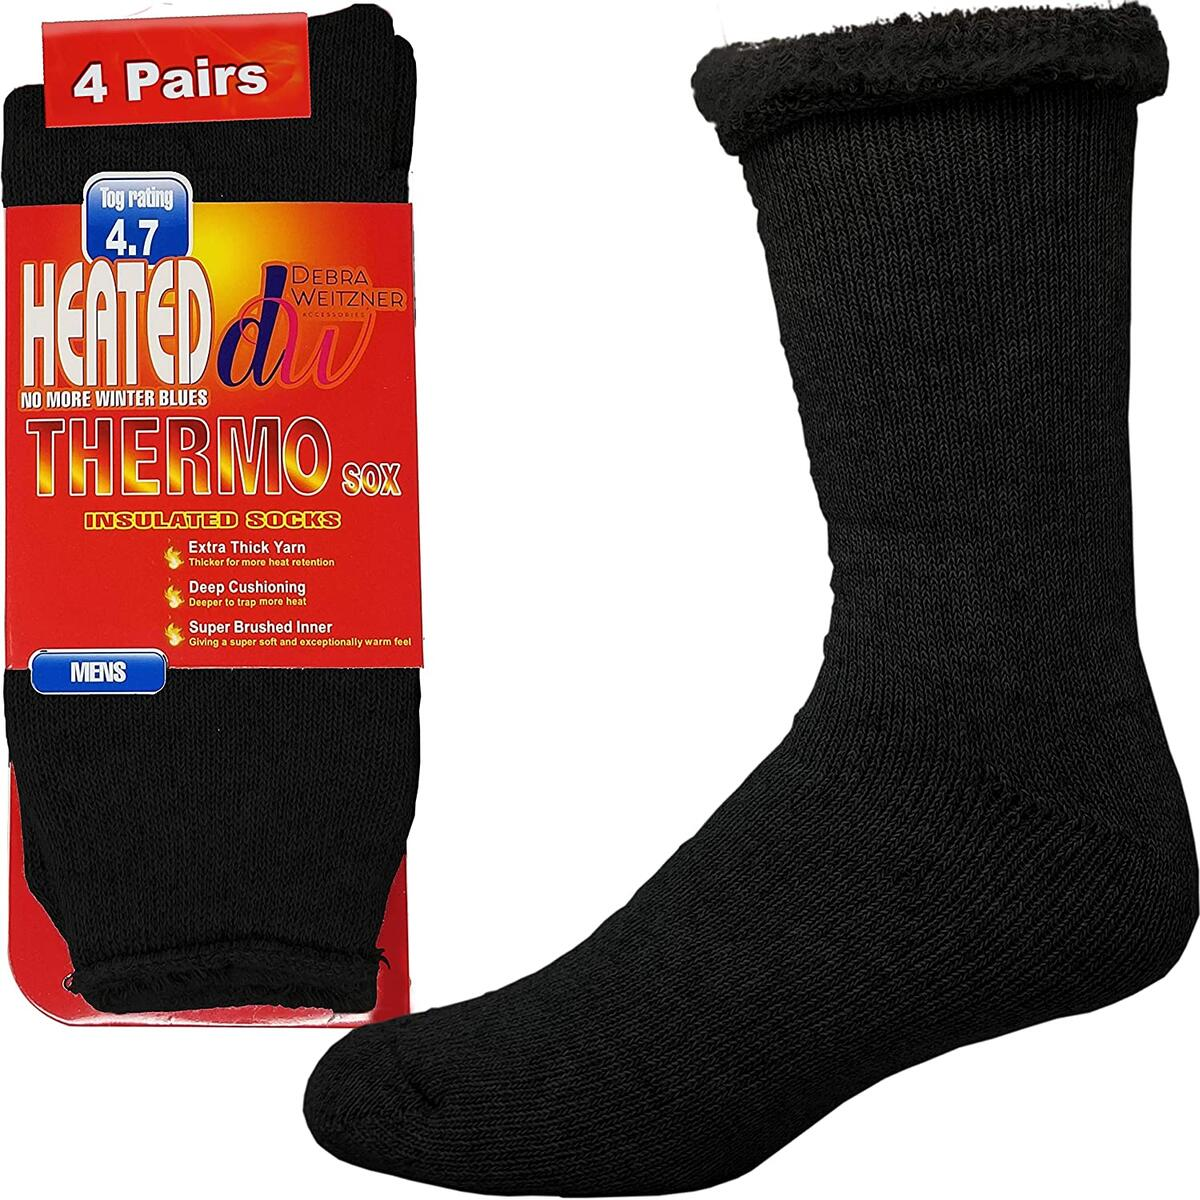 Debra Weitzner Thermal Socks For Men and Women Heated Winter Socks Insulated for Cold Weathers 4 Pack color black size 10-13 4.7 thickness